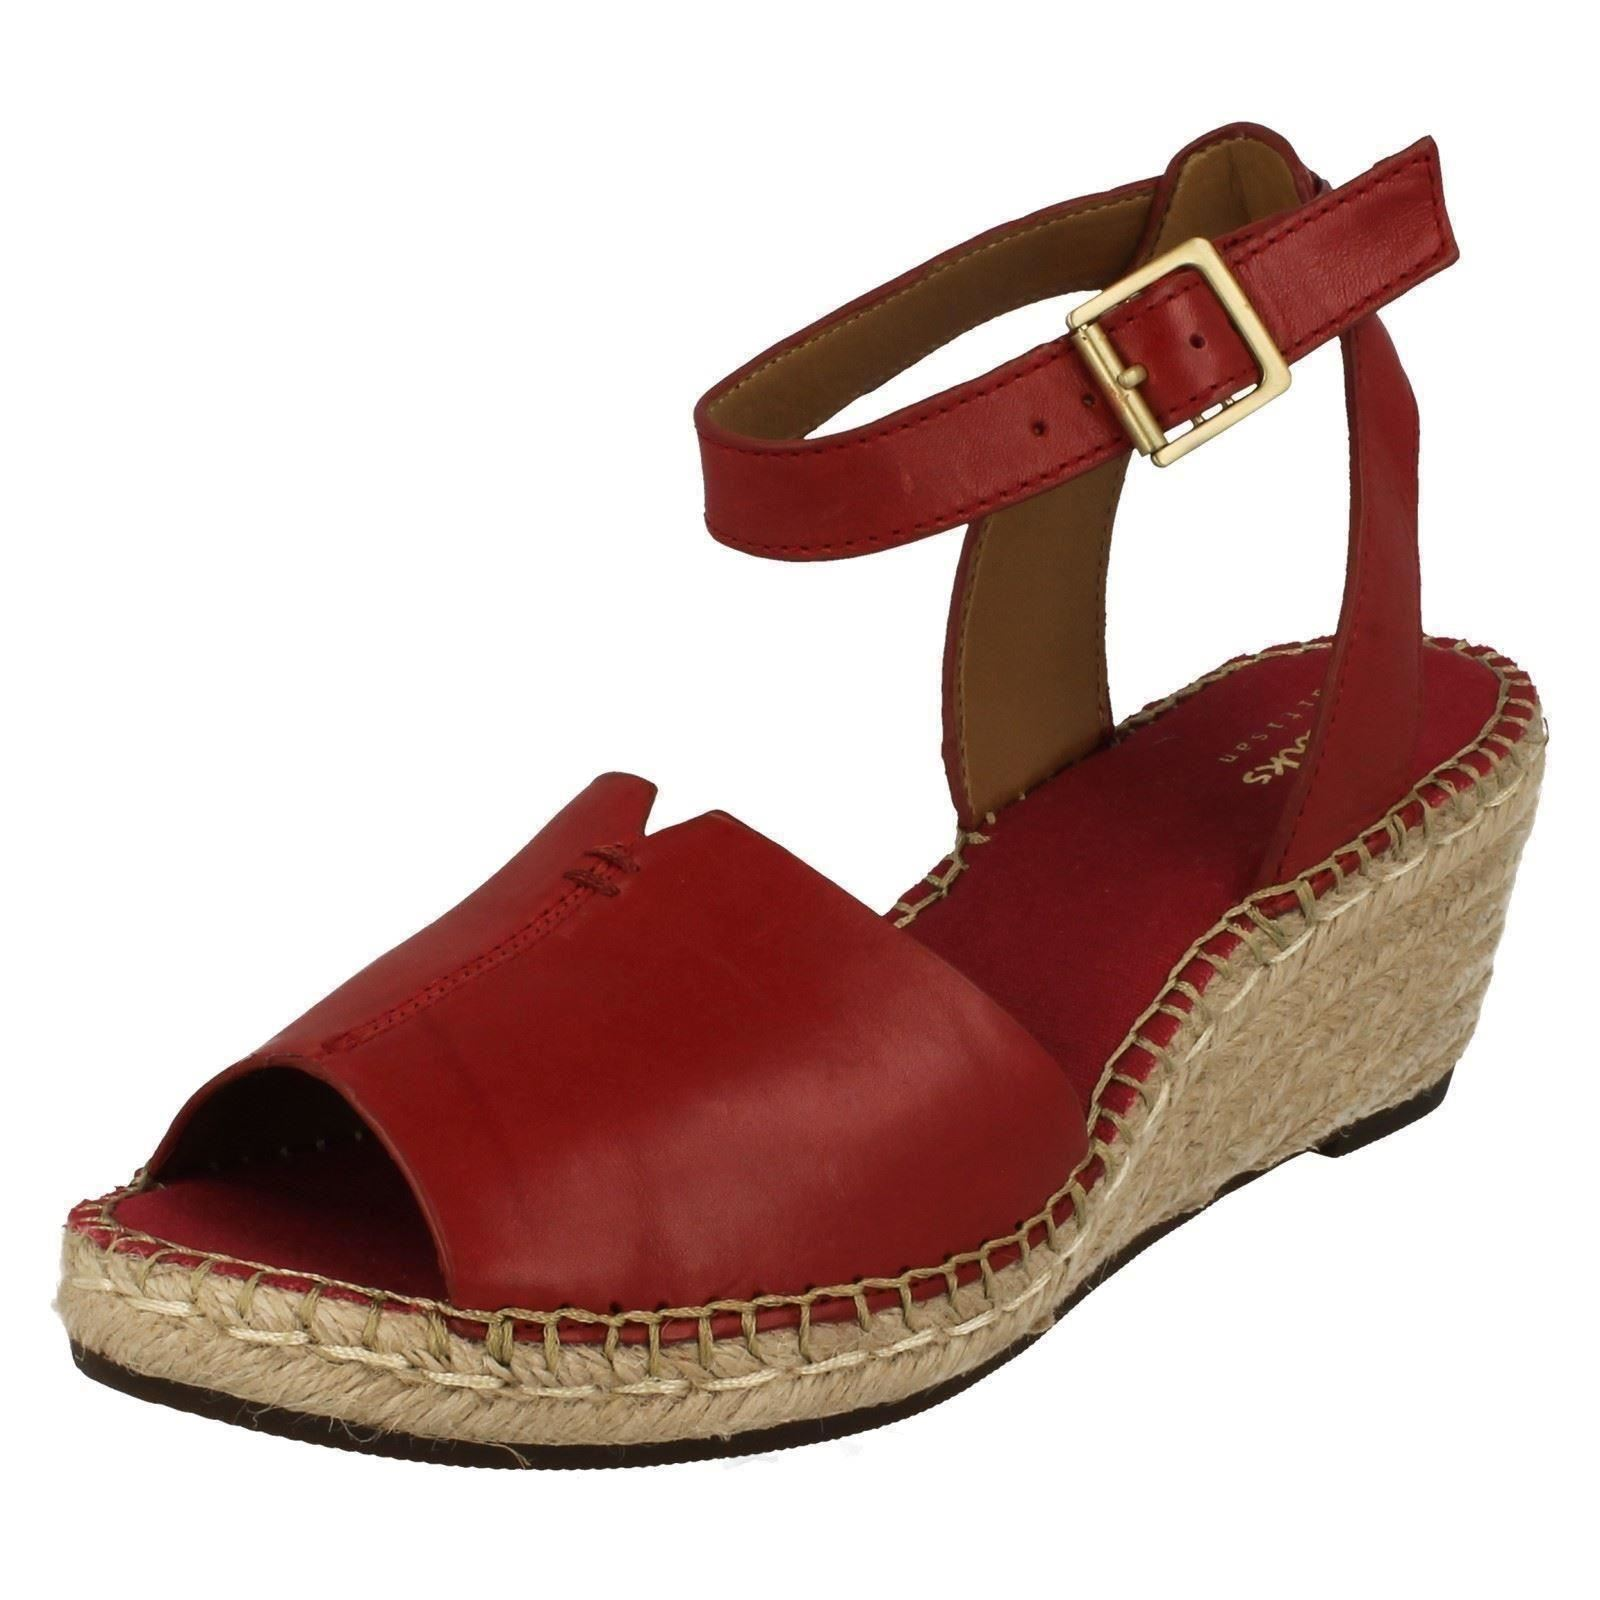 fe194d41b7f Ladies Clarks Hessian Wedge Sandals Petrina Selma Red UK 8 D. About this  product. Picture 1 of 8  Picture 2 of 8 ...